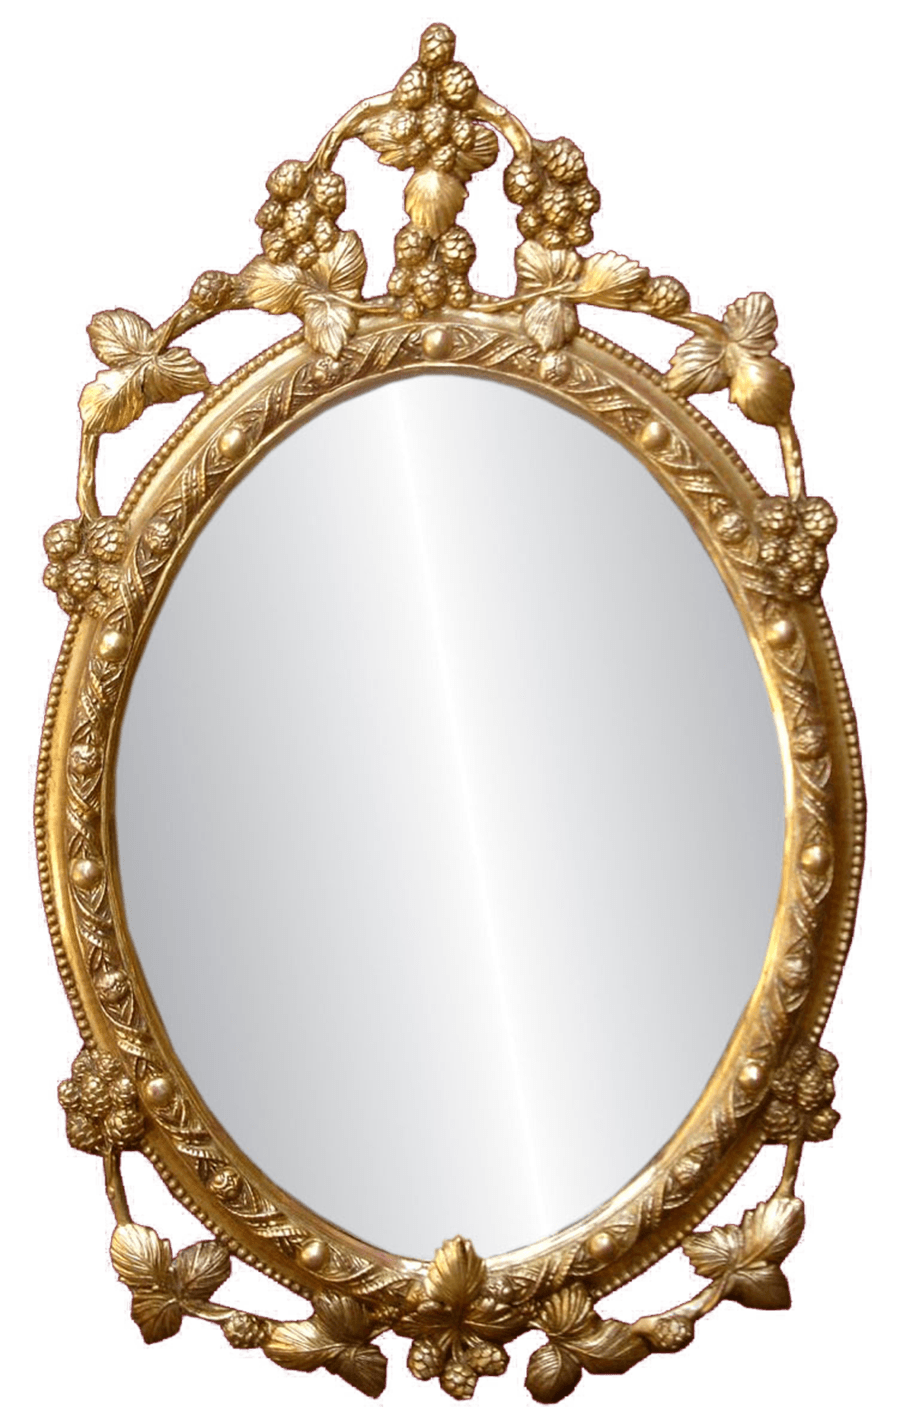 Oval mirror png